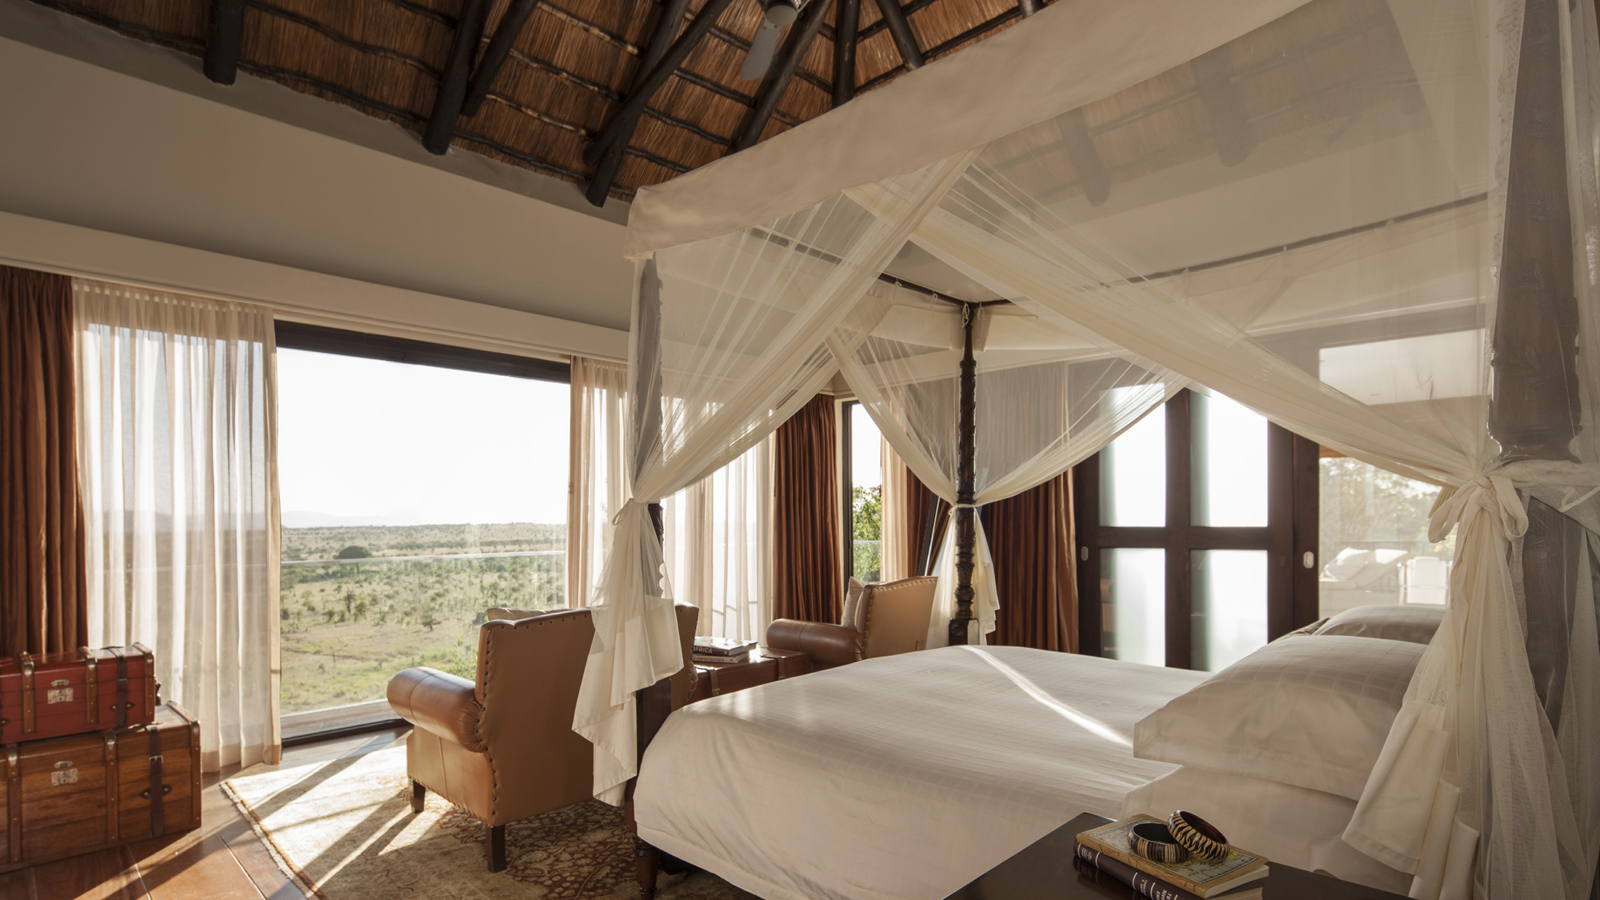 Tanzania safari lodge room rates four seasons lodge Four season rooms pictures